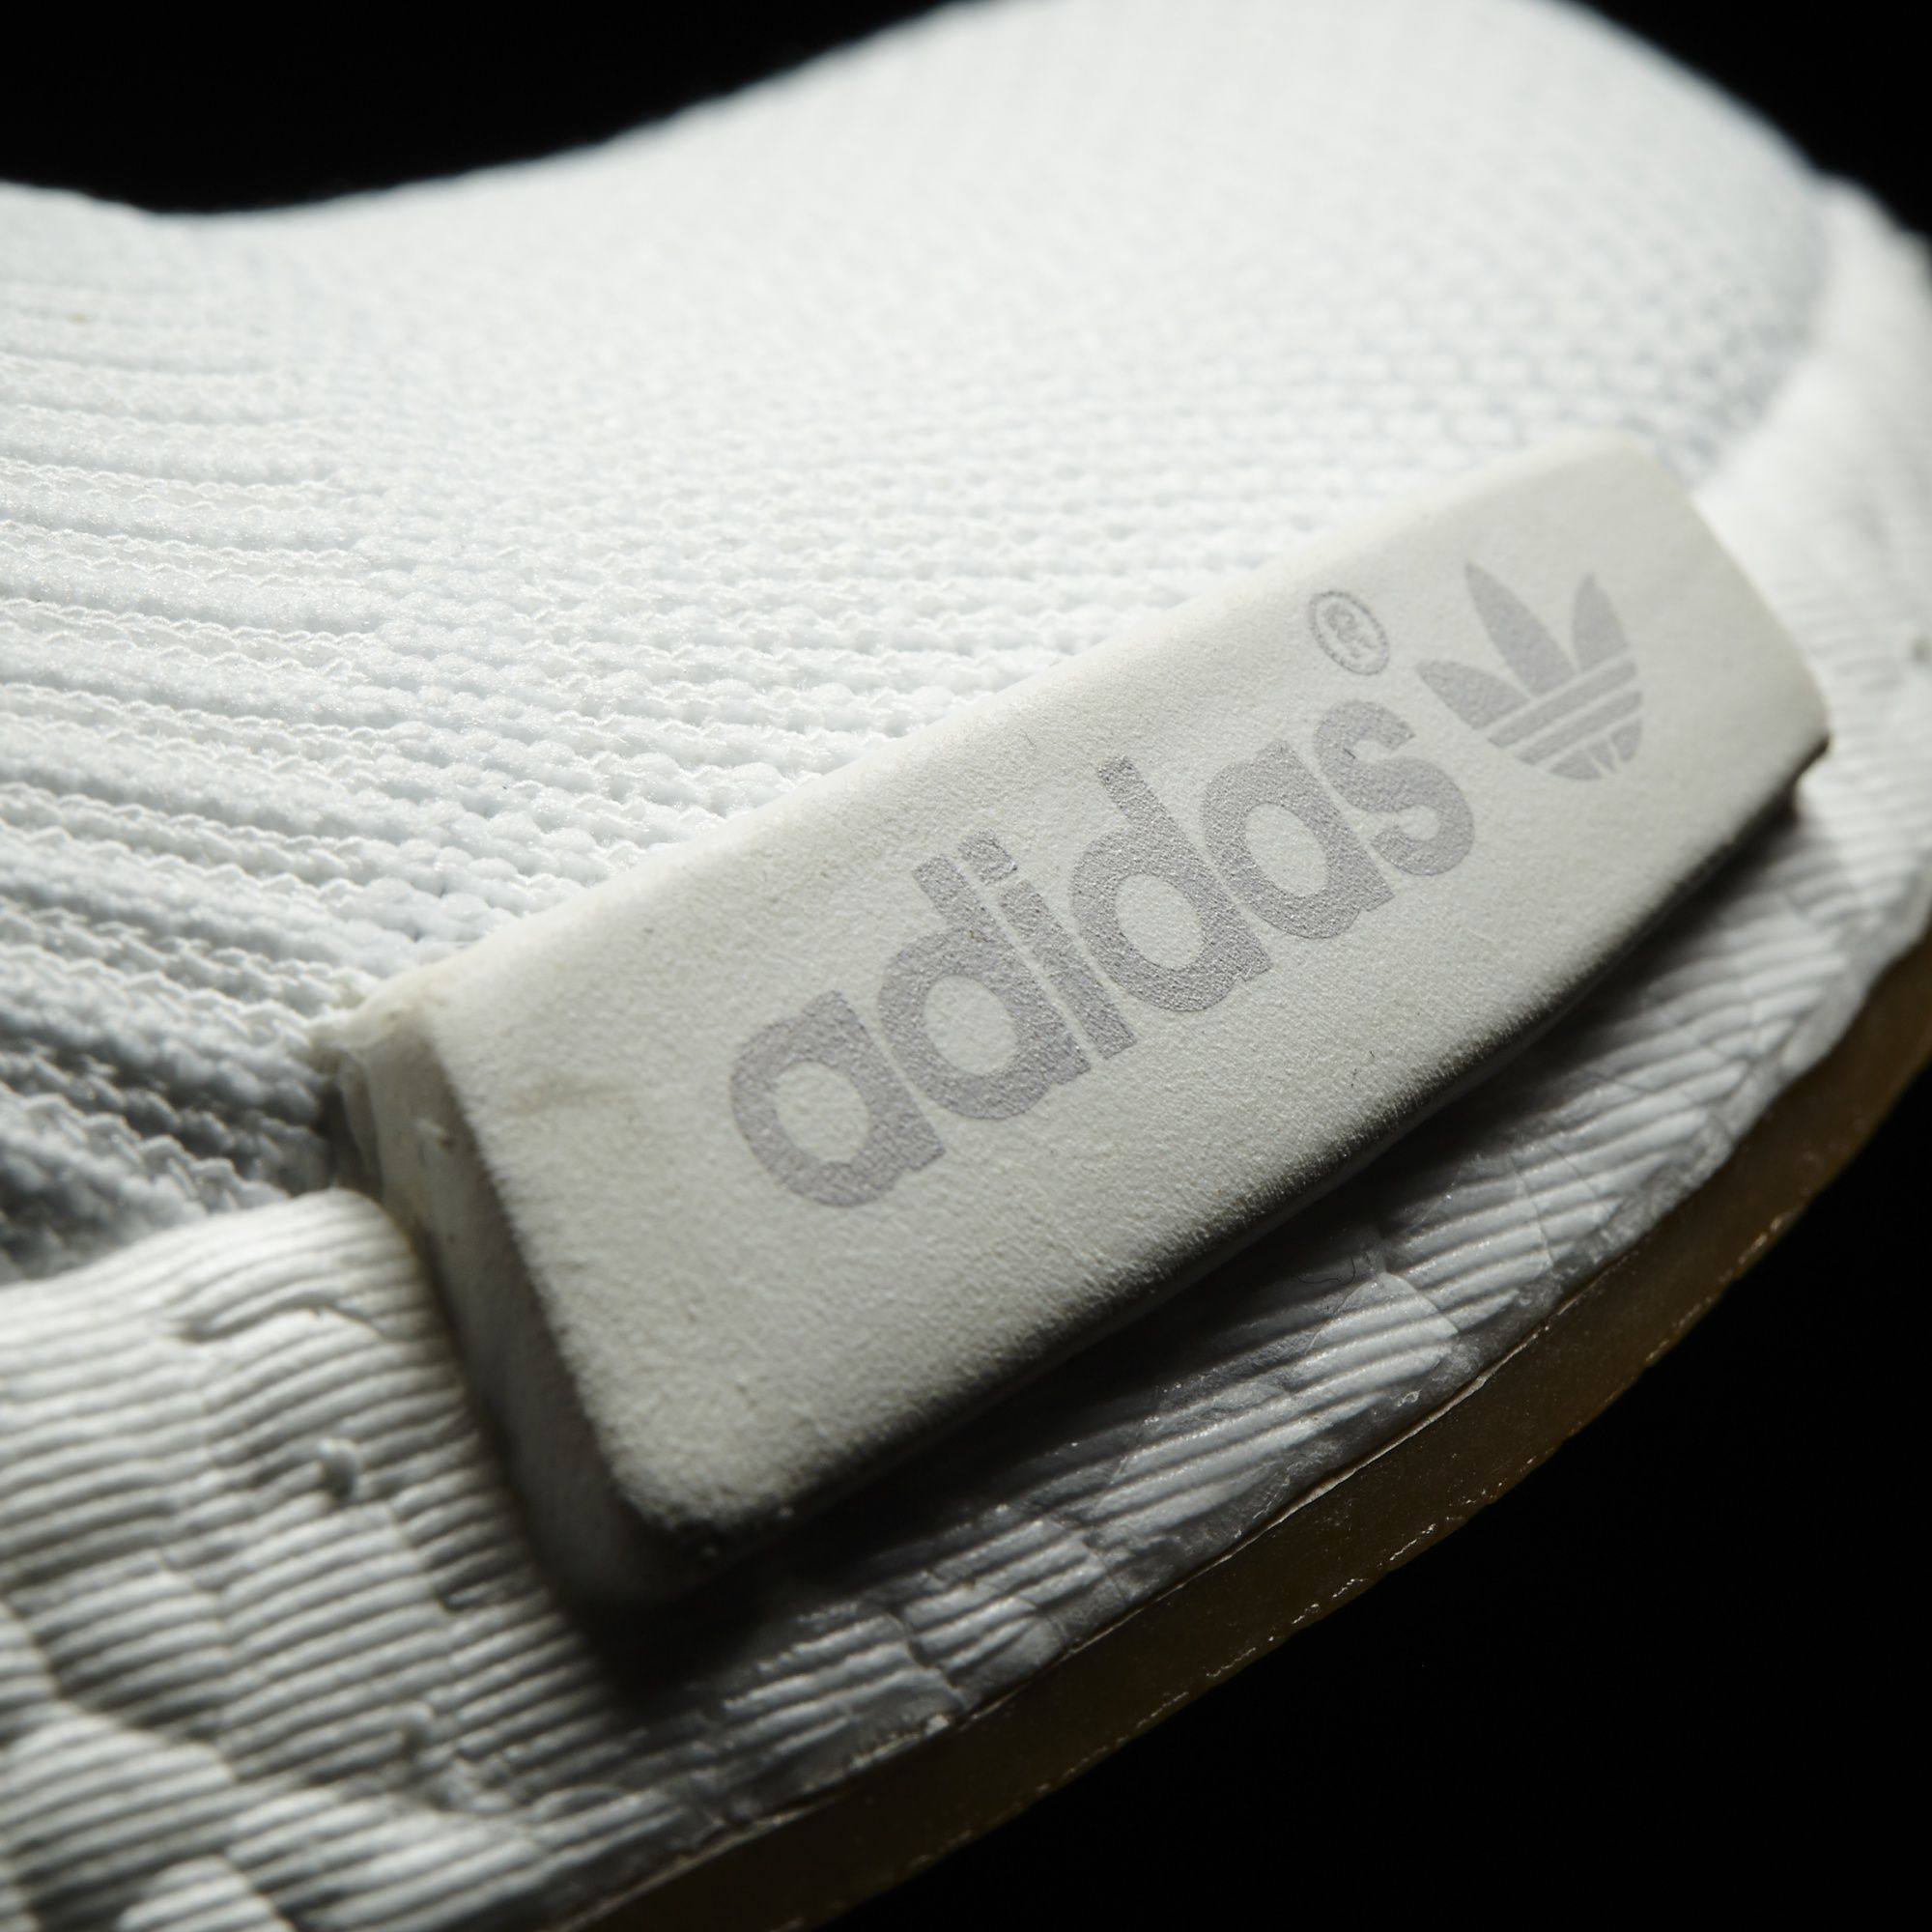 adidas NMD City Sock White Midsole